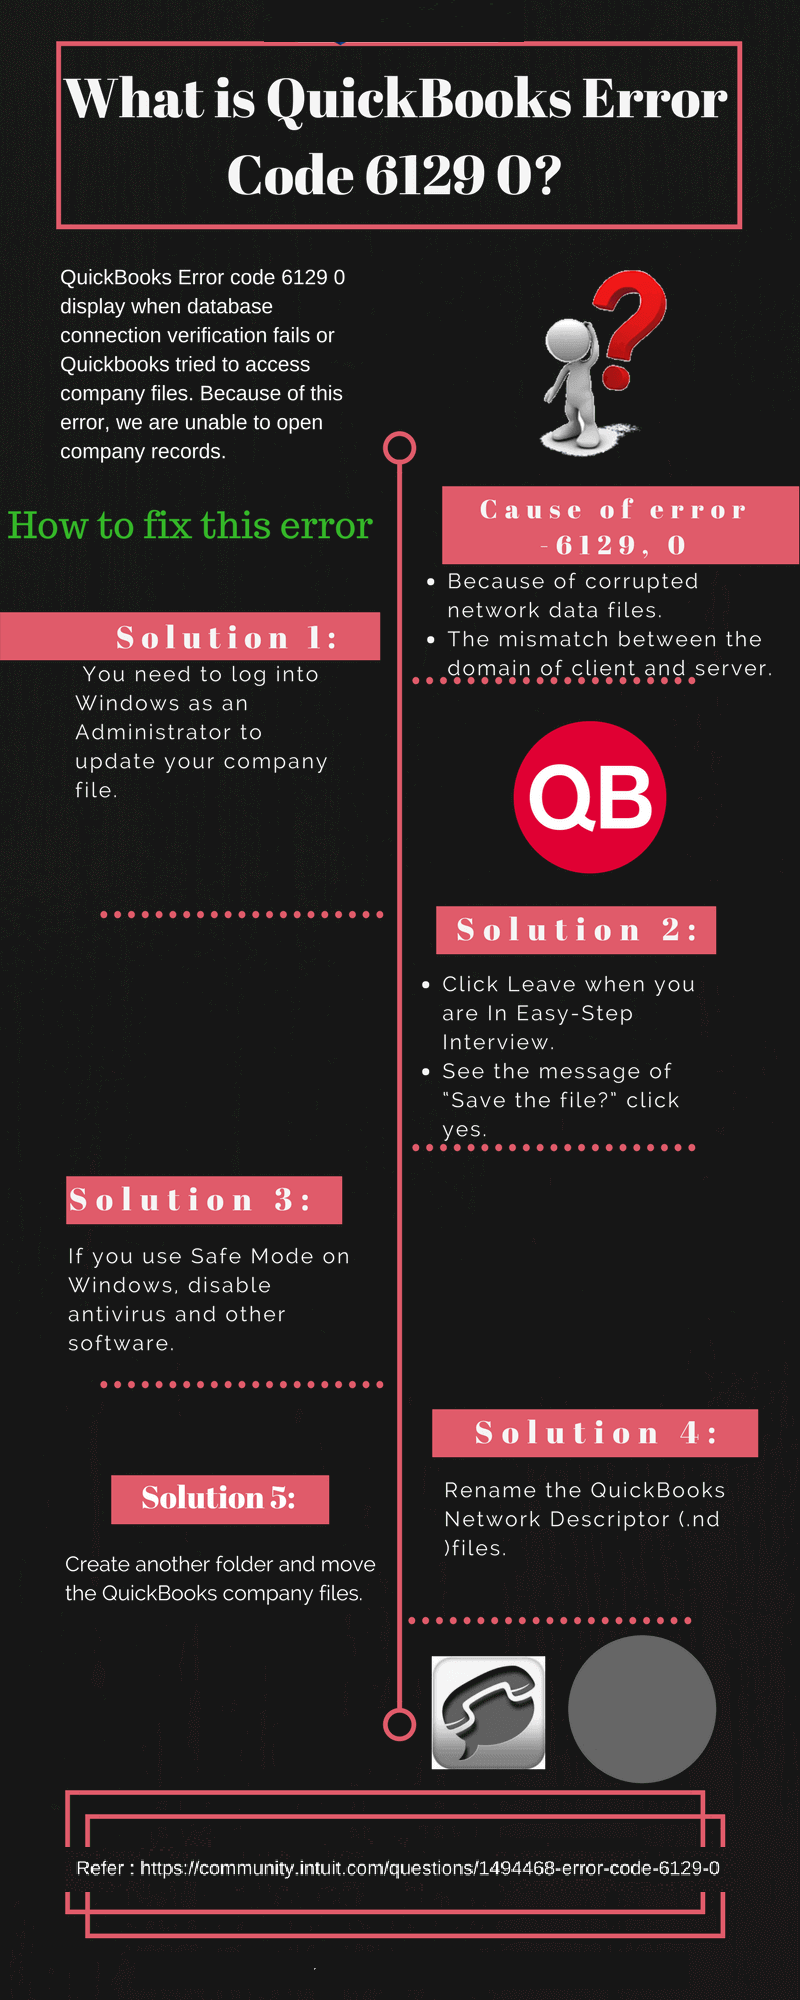 How to Rectify QuickBooks database error code 6129 - Infographic Image